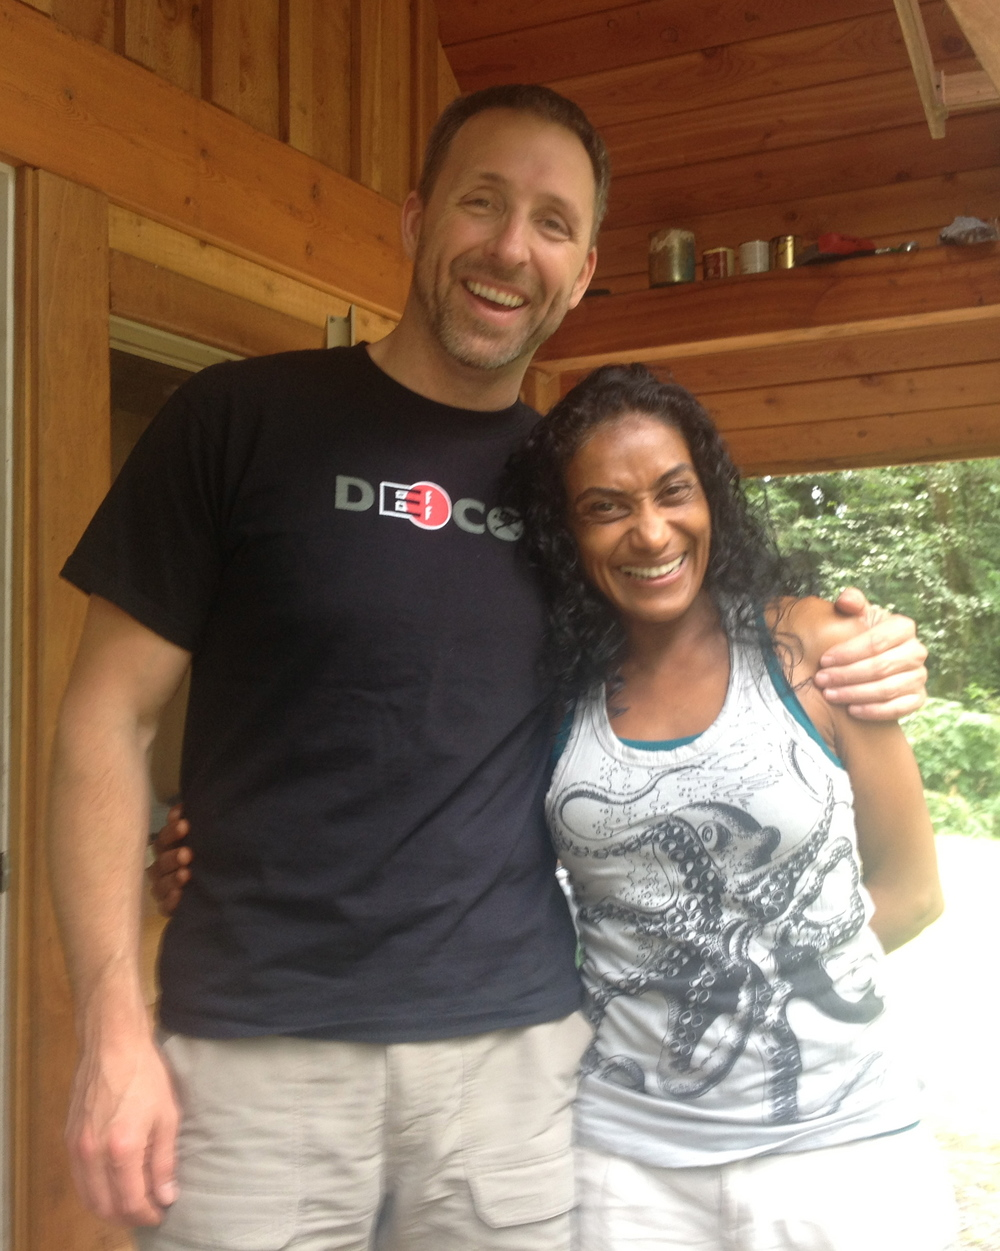 Dave Asprey and Cacilda (wearing one of her SureDesign t-shirts!) at his bio-hacking lab (aka man-cave).